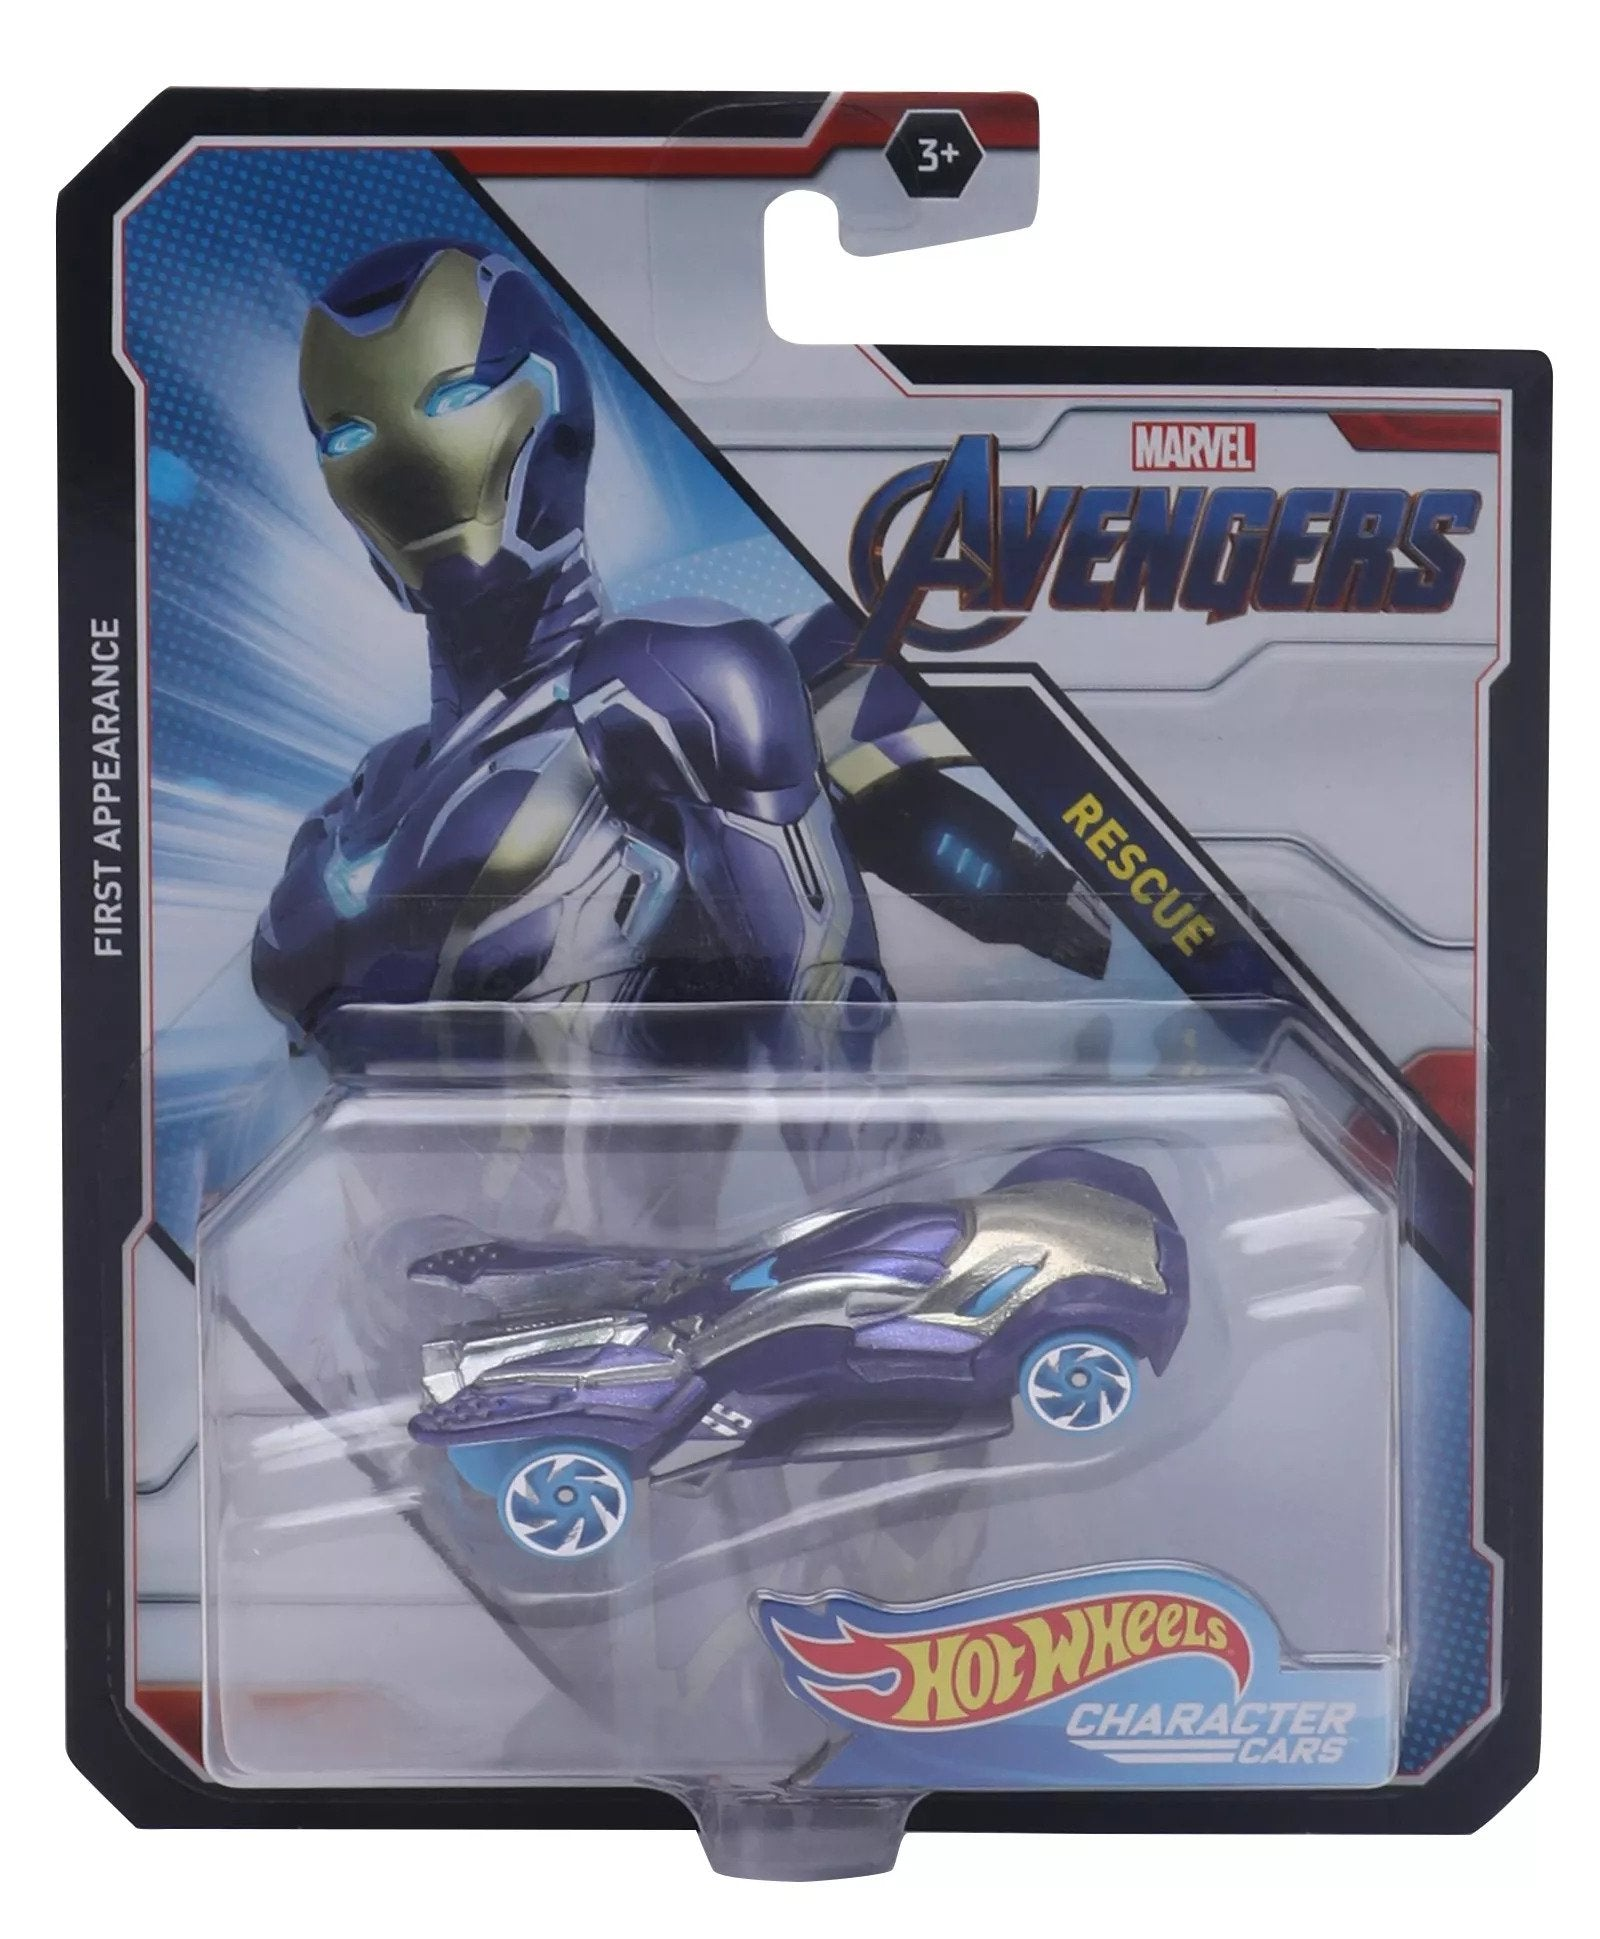 Avengers Rescue 1:64 Scale Die-Cast Car by Hot Wheels -Hot Wheels - India - www.superherotoystore.com